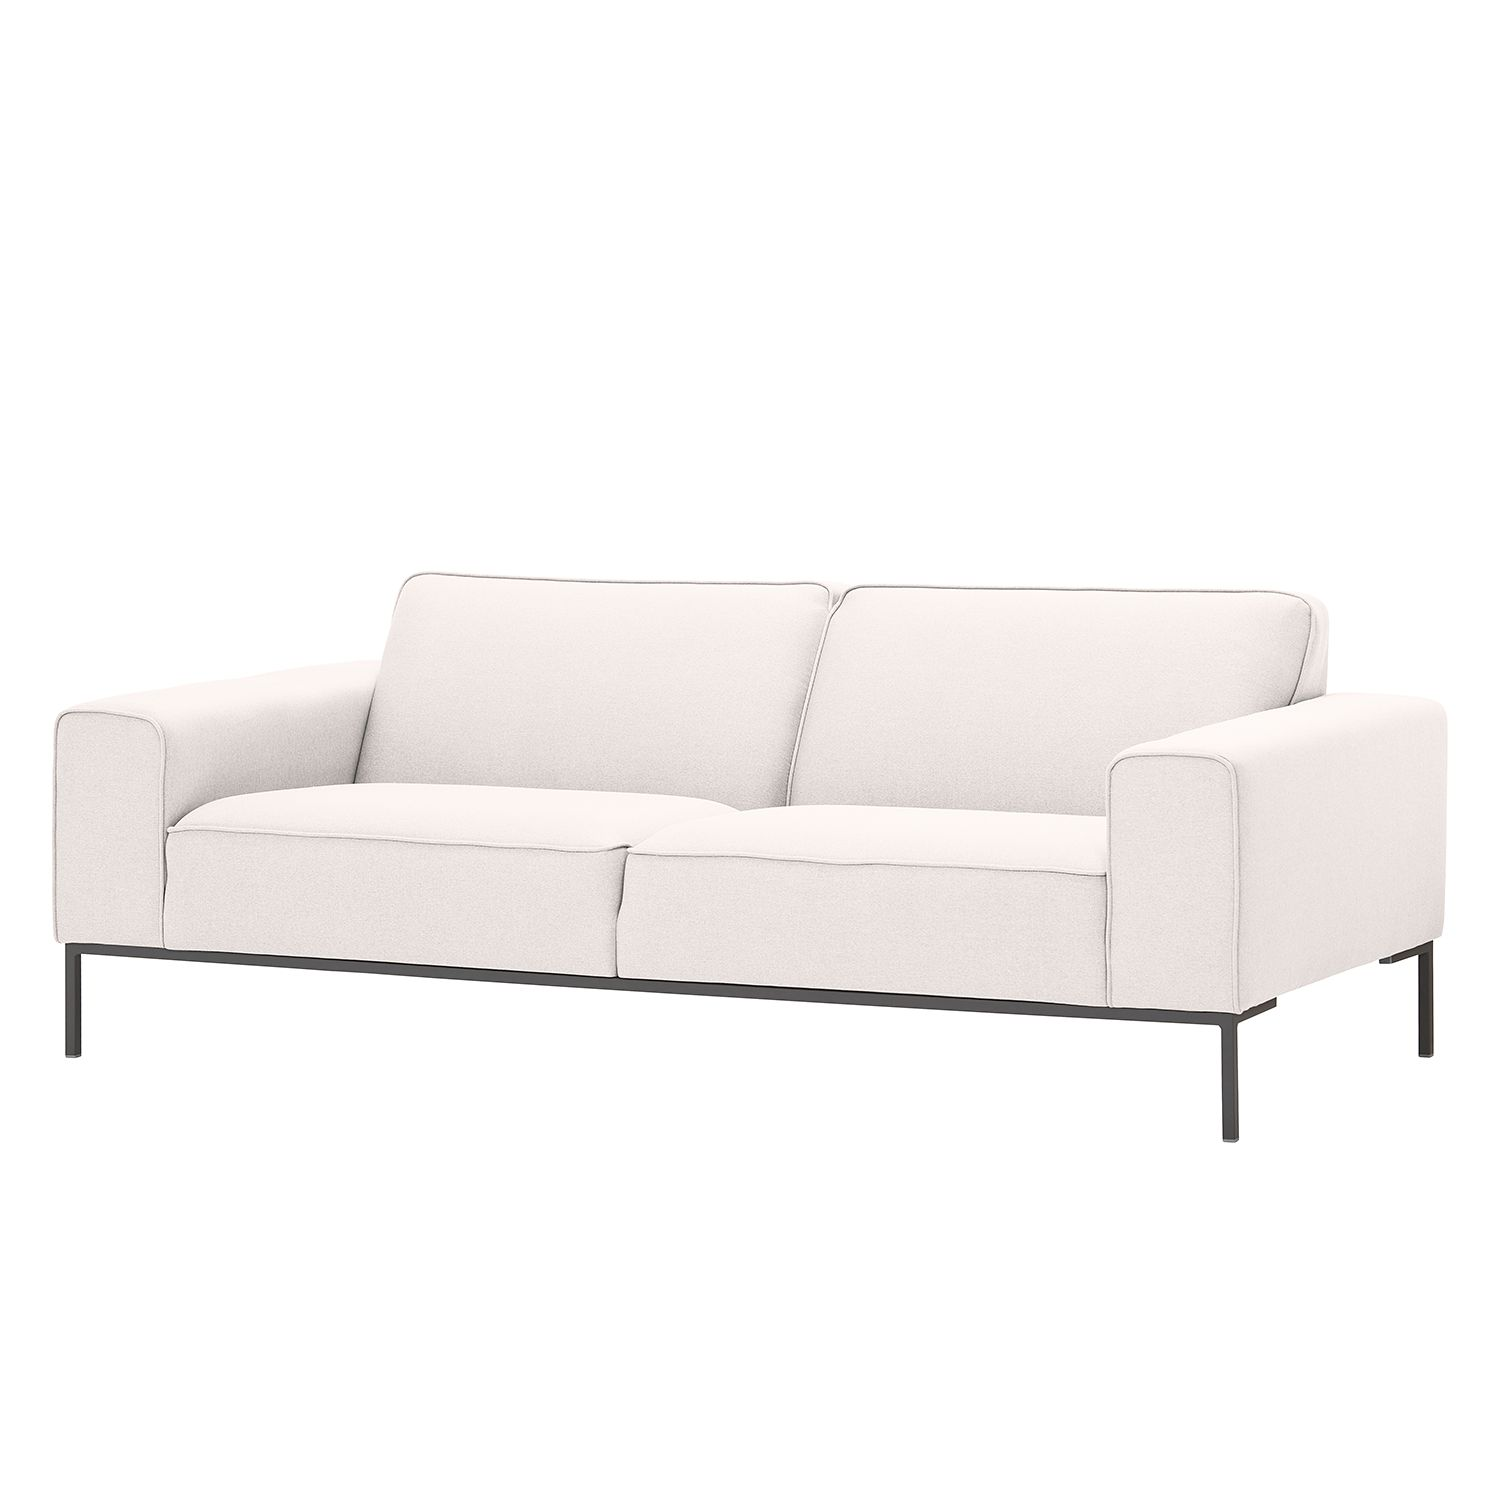 Big Sofa Xxl Beige Sofa Beige Stoff Interesting Large Size Of Ecksofa Weis